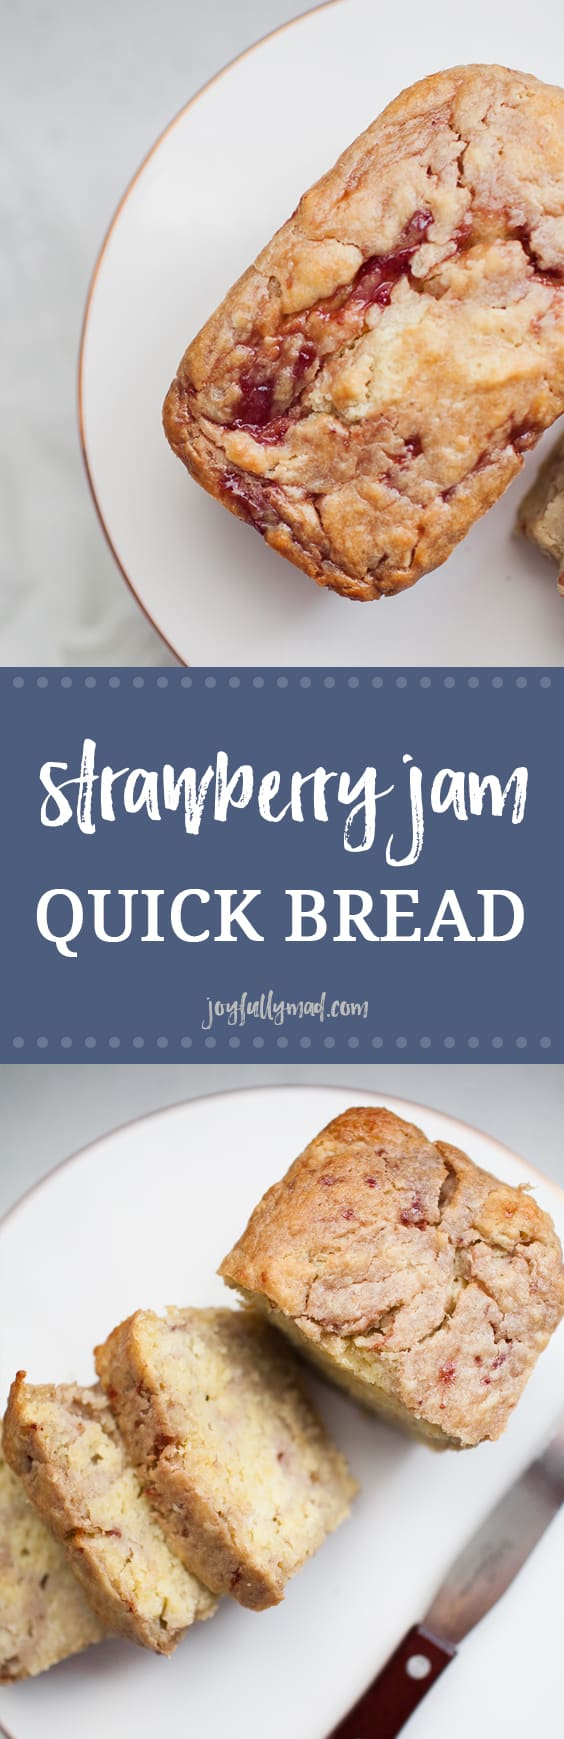 This strawberry jam quick bread is a special treat that the whole family can enjoy! Made with honey sweetened jam, it's the perfect little indulgence. Make mini loaves and give them as gifts!